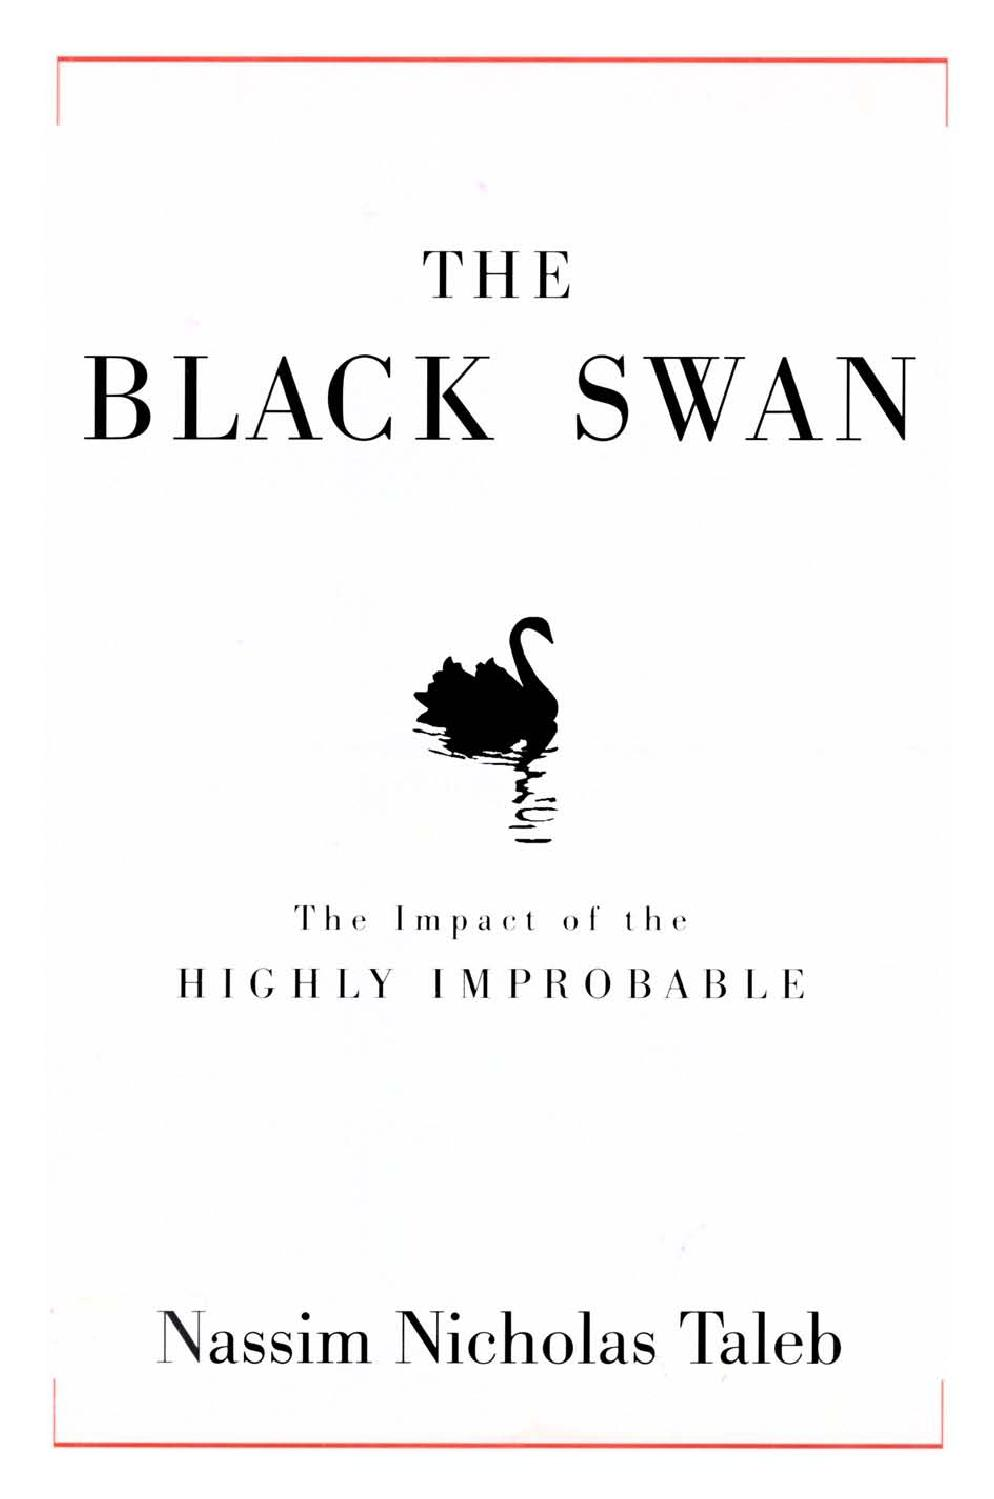 The Black Swan: The Impact of the Highly Improbable by Nassim Nicholas Taleb.